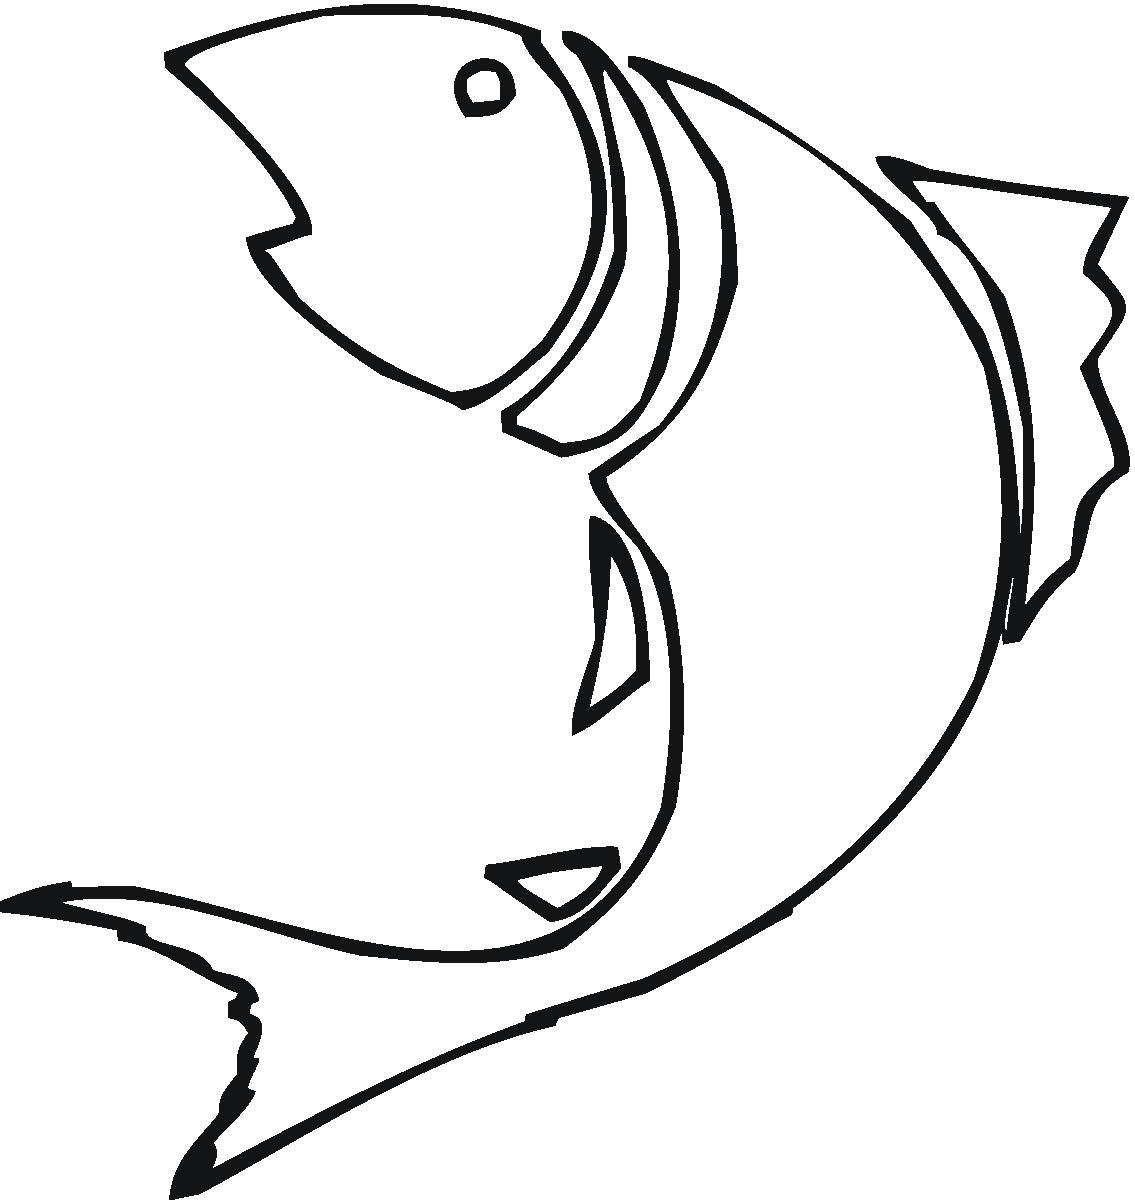 Free Fish Line Drawings, Download Free Clip Art, Free Clip.